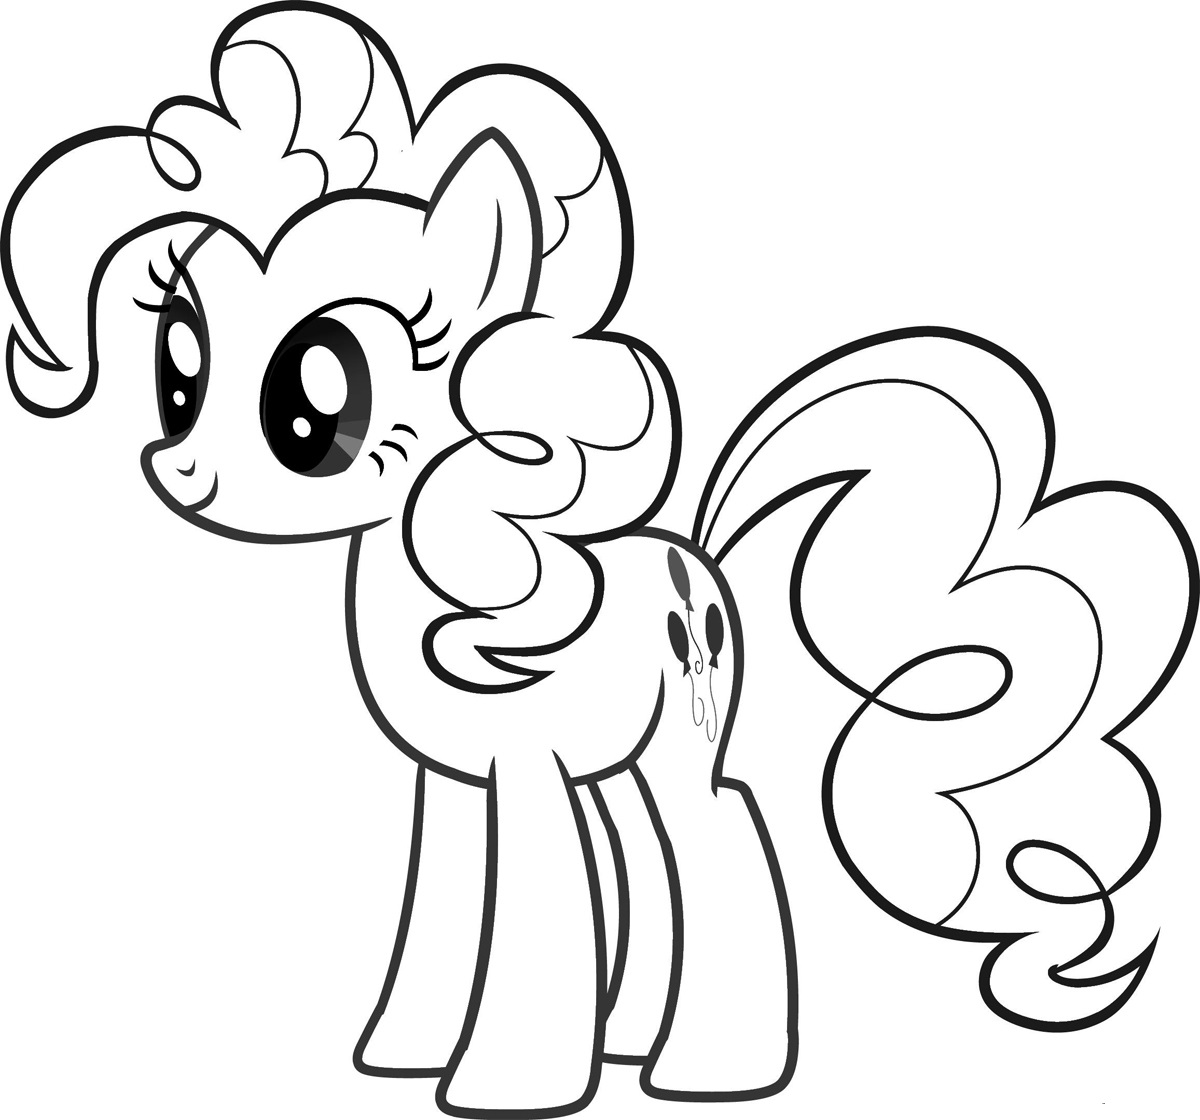 cute pony coloring pages pinkie pie pony coloring pages for girls to print for free cute pony pages coloring